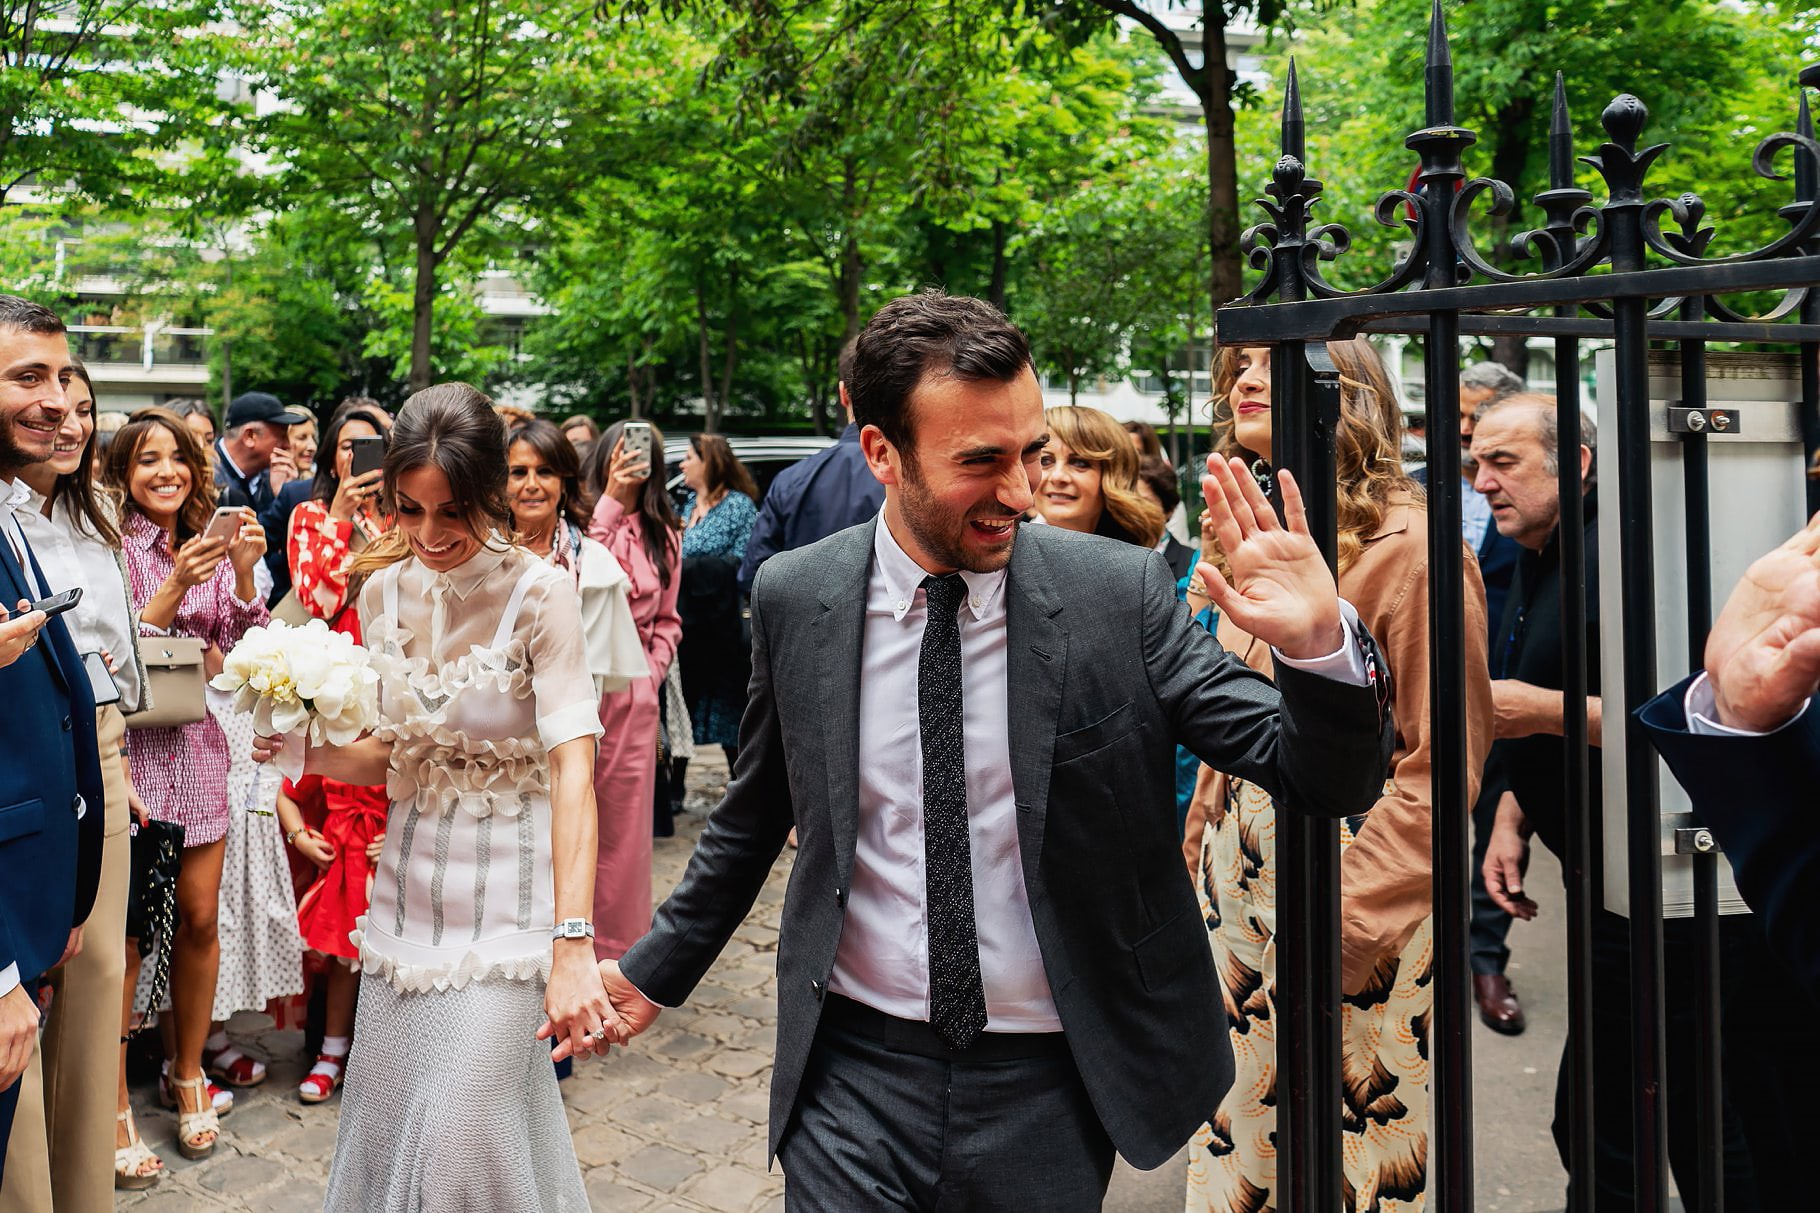 bride and groom entering the location of the ceremony of their wedding in paris